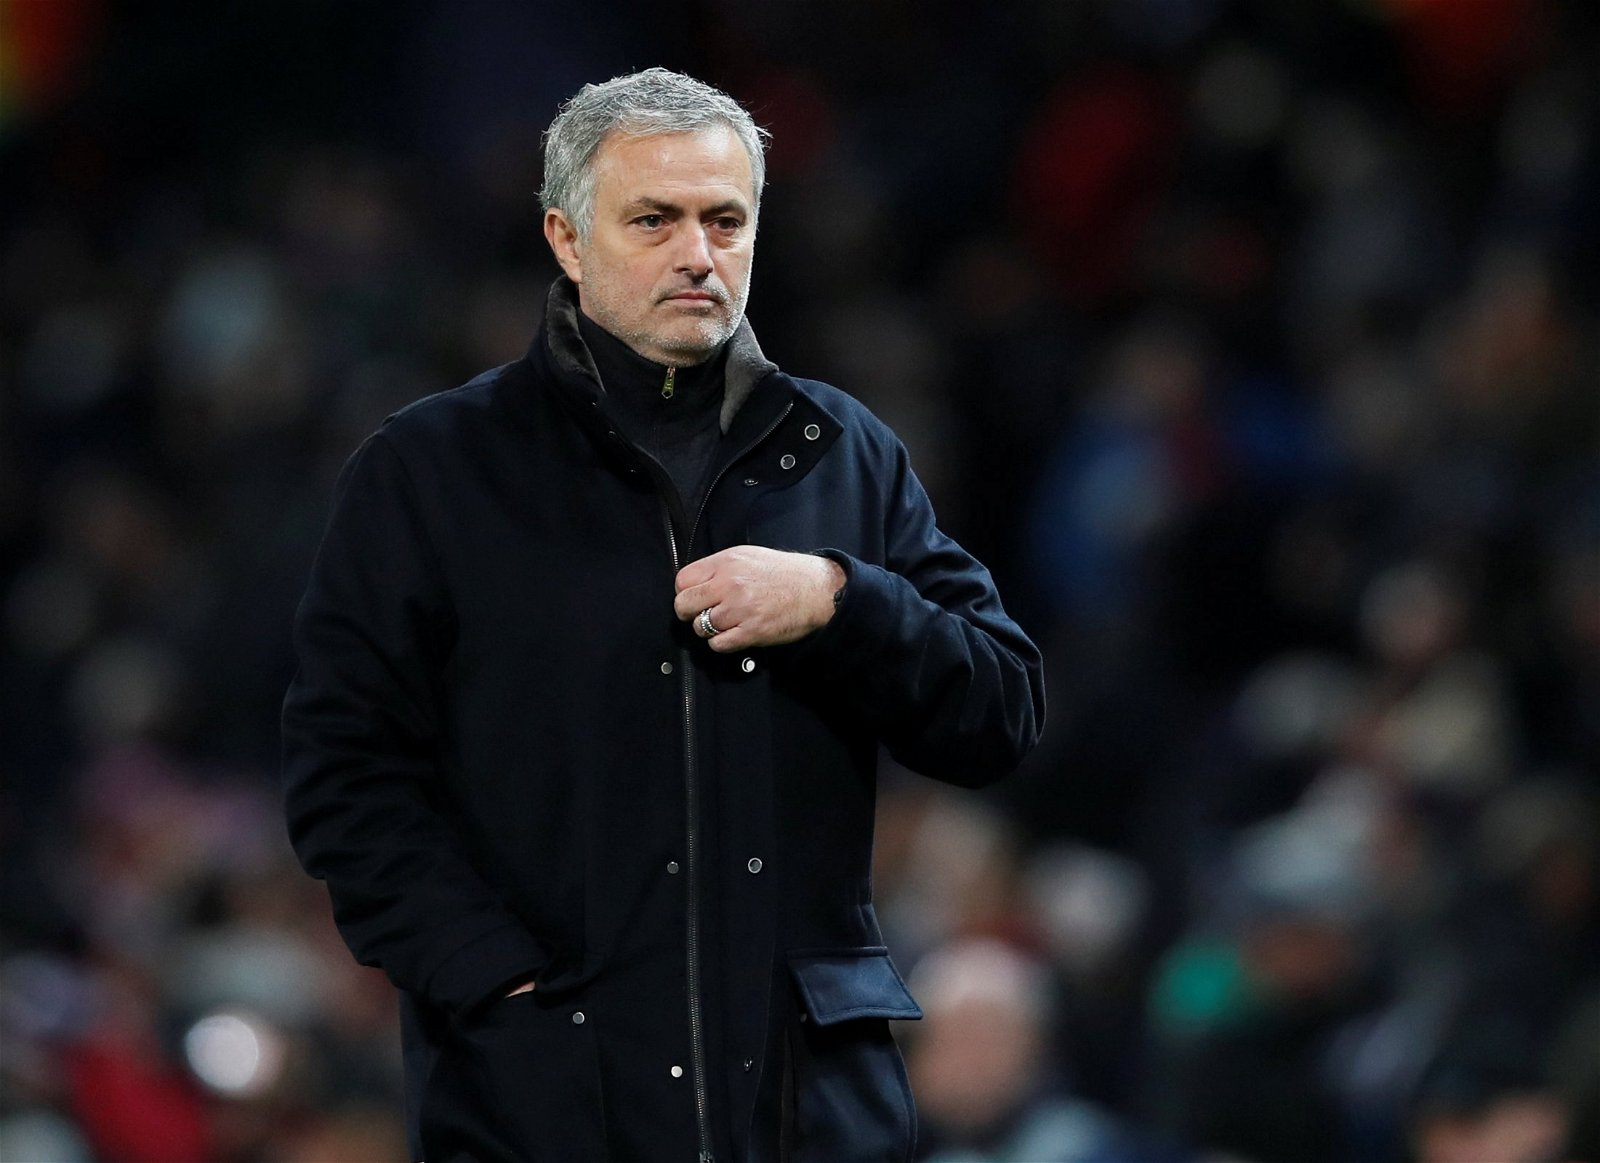 Manchester United manager Jose Mourinho looks dejected after defeat